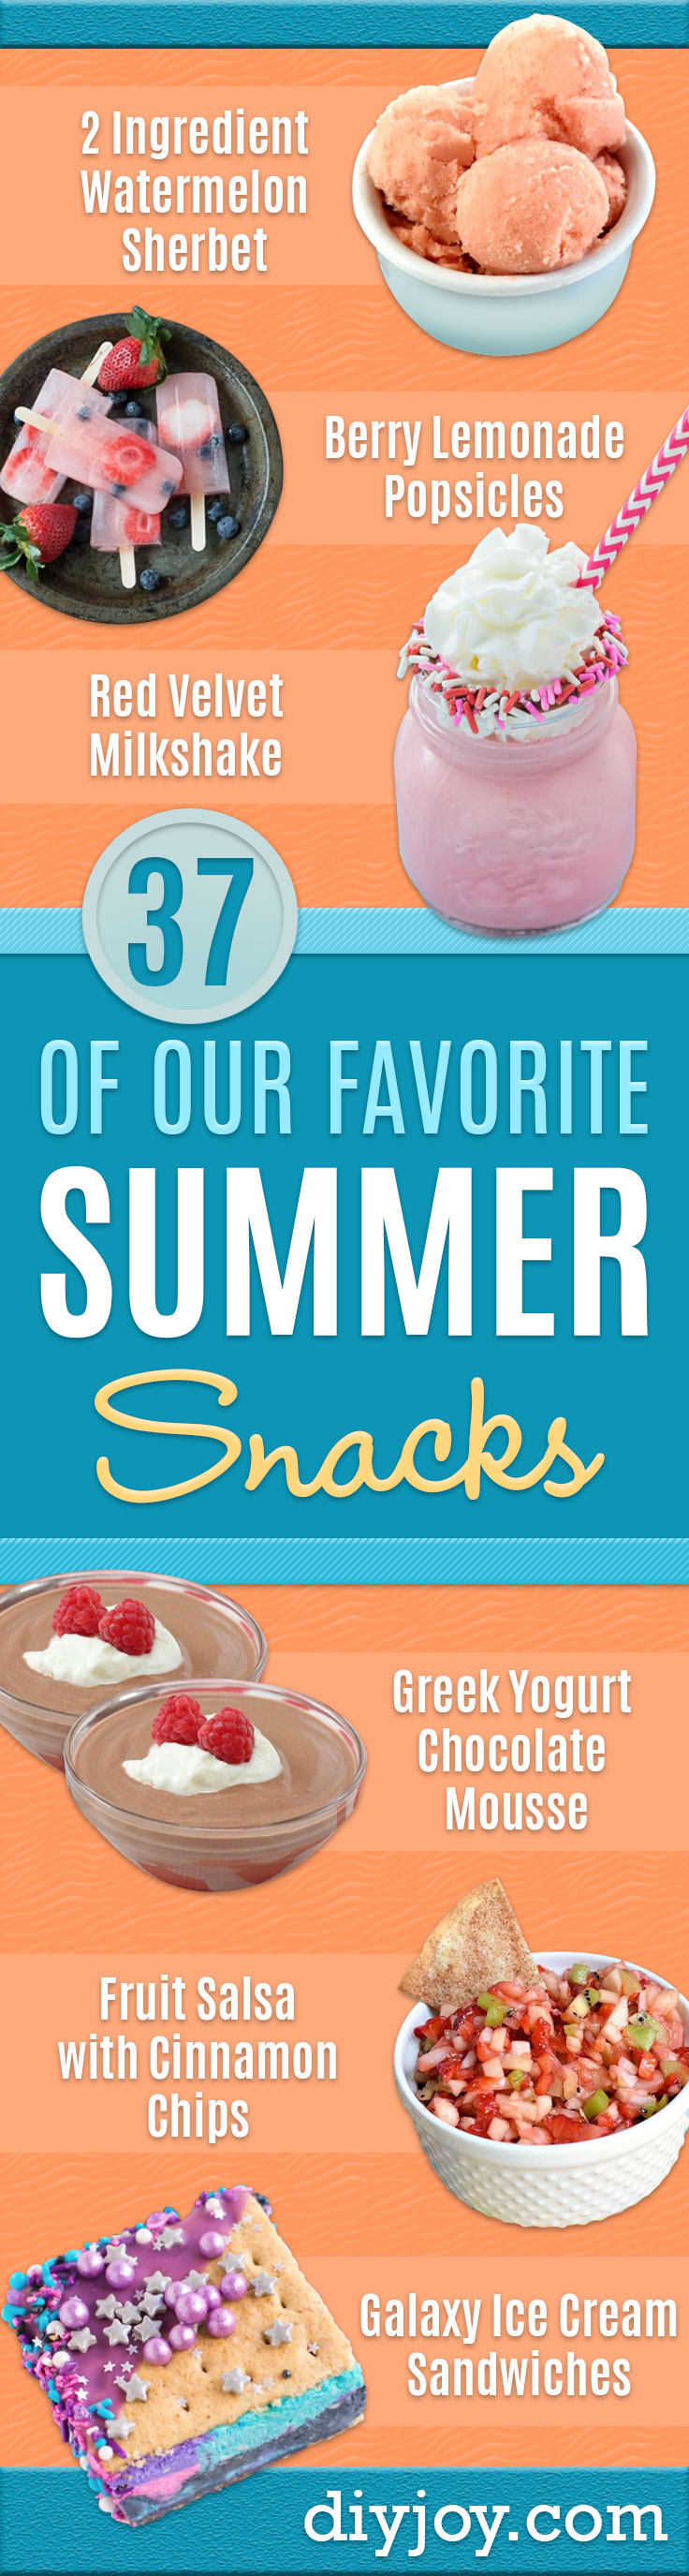 Best Summer Snacks and Snack Recipes - Quick And Easy Snack Ideas for After Workout, School, Work - Mid Day Treats, Best Small Desserts, Simple and Fast Things To Make In Minutes - Healthy Snacking Foods Made With Vegetables, Cheese, Yogurt, Fruit and Gluten Free Options - Kids Love Making These Sweets, Popsicles, Drinks, Smoothies and Fun Foods - Refreshing and Cool Options for Eating Outside on a Hot Day http://diyjoy.com/best-summer-snacks